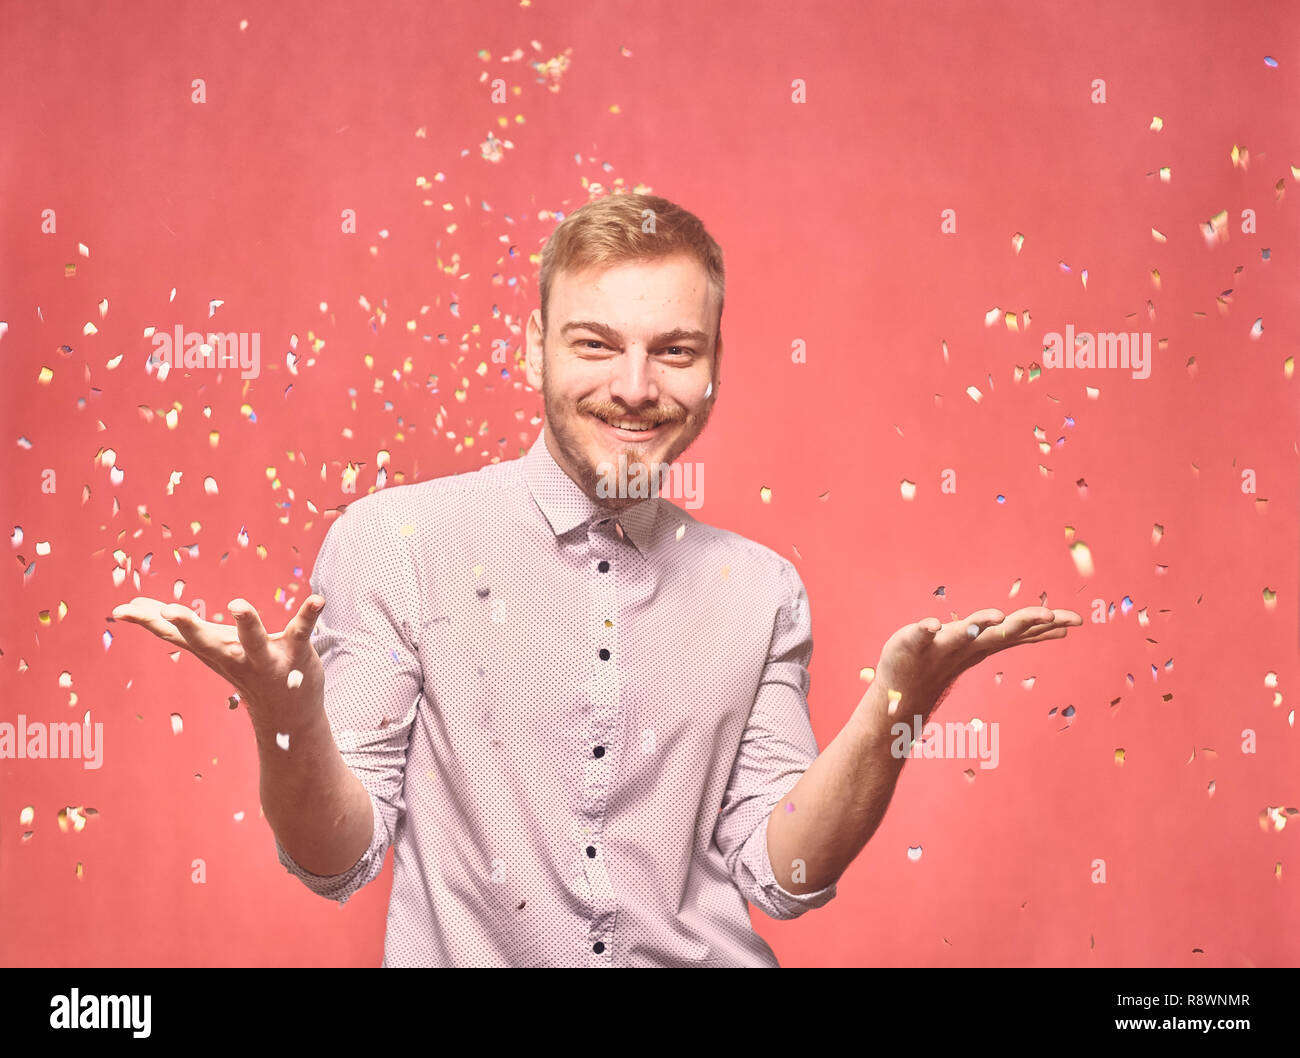 one young man, 20-29 years old, candid smiling happy, throwing confetti flying in air. real person, not model. pink background, studio shot, photo sho - Stock Image